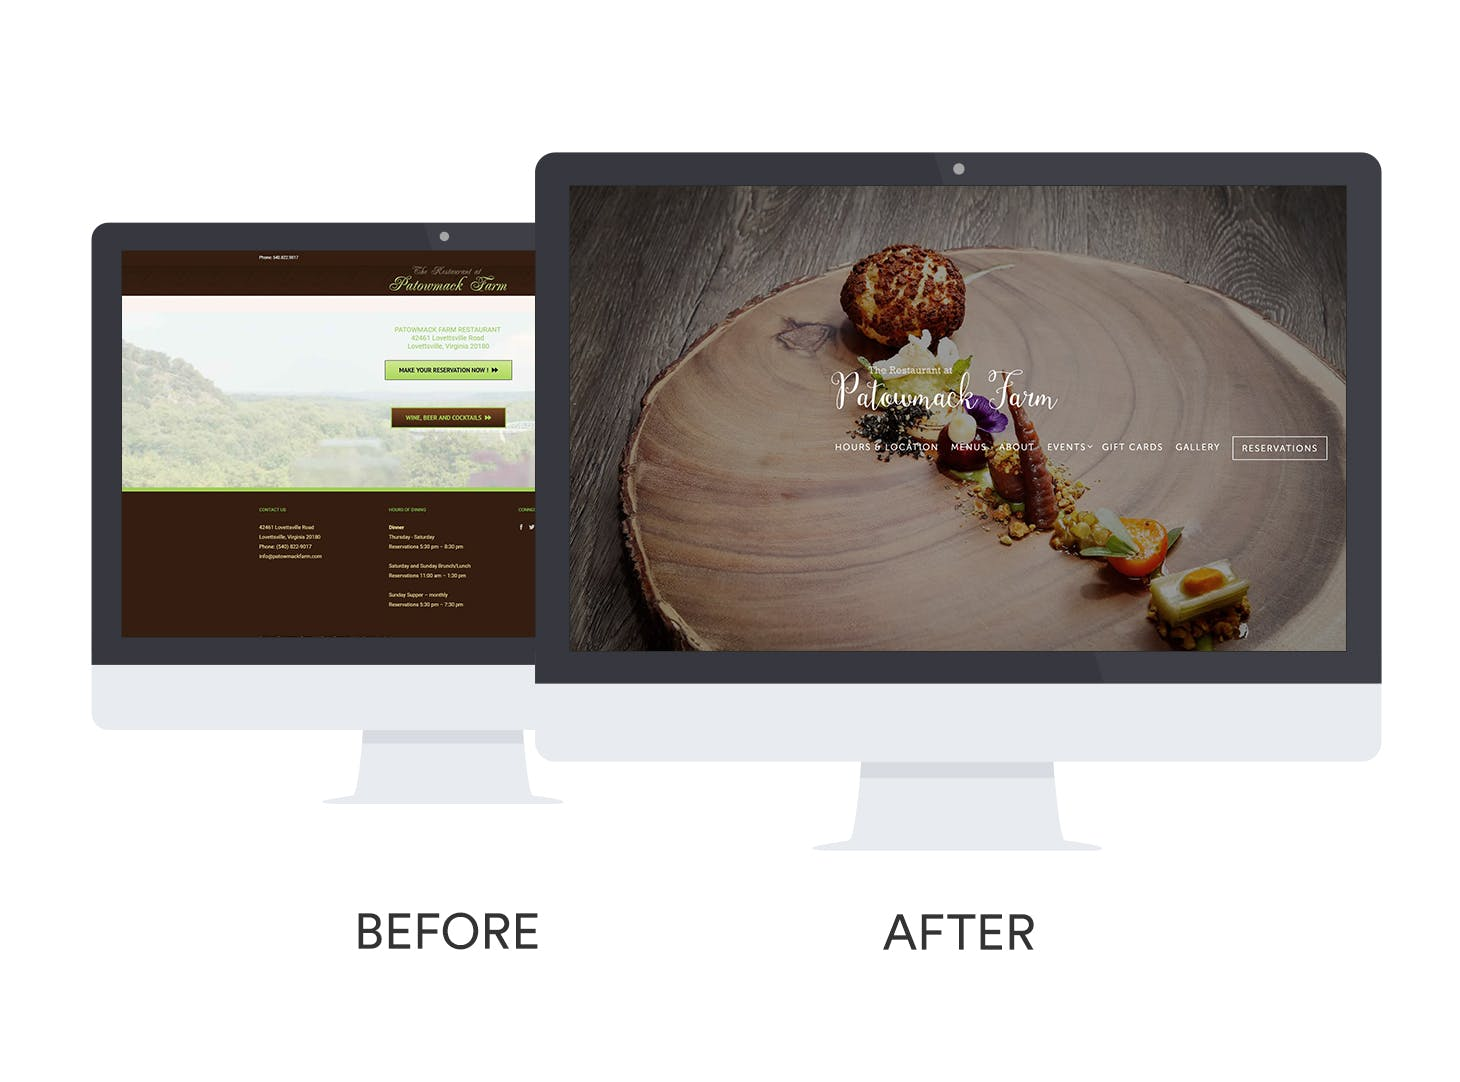 Before and after of The Restaurant at Patowmack Farm's website